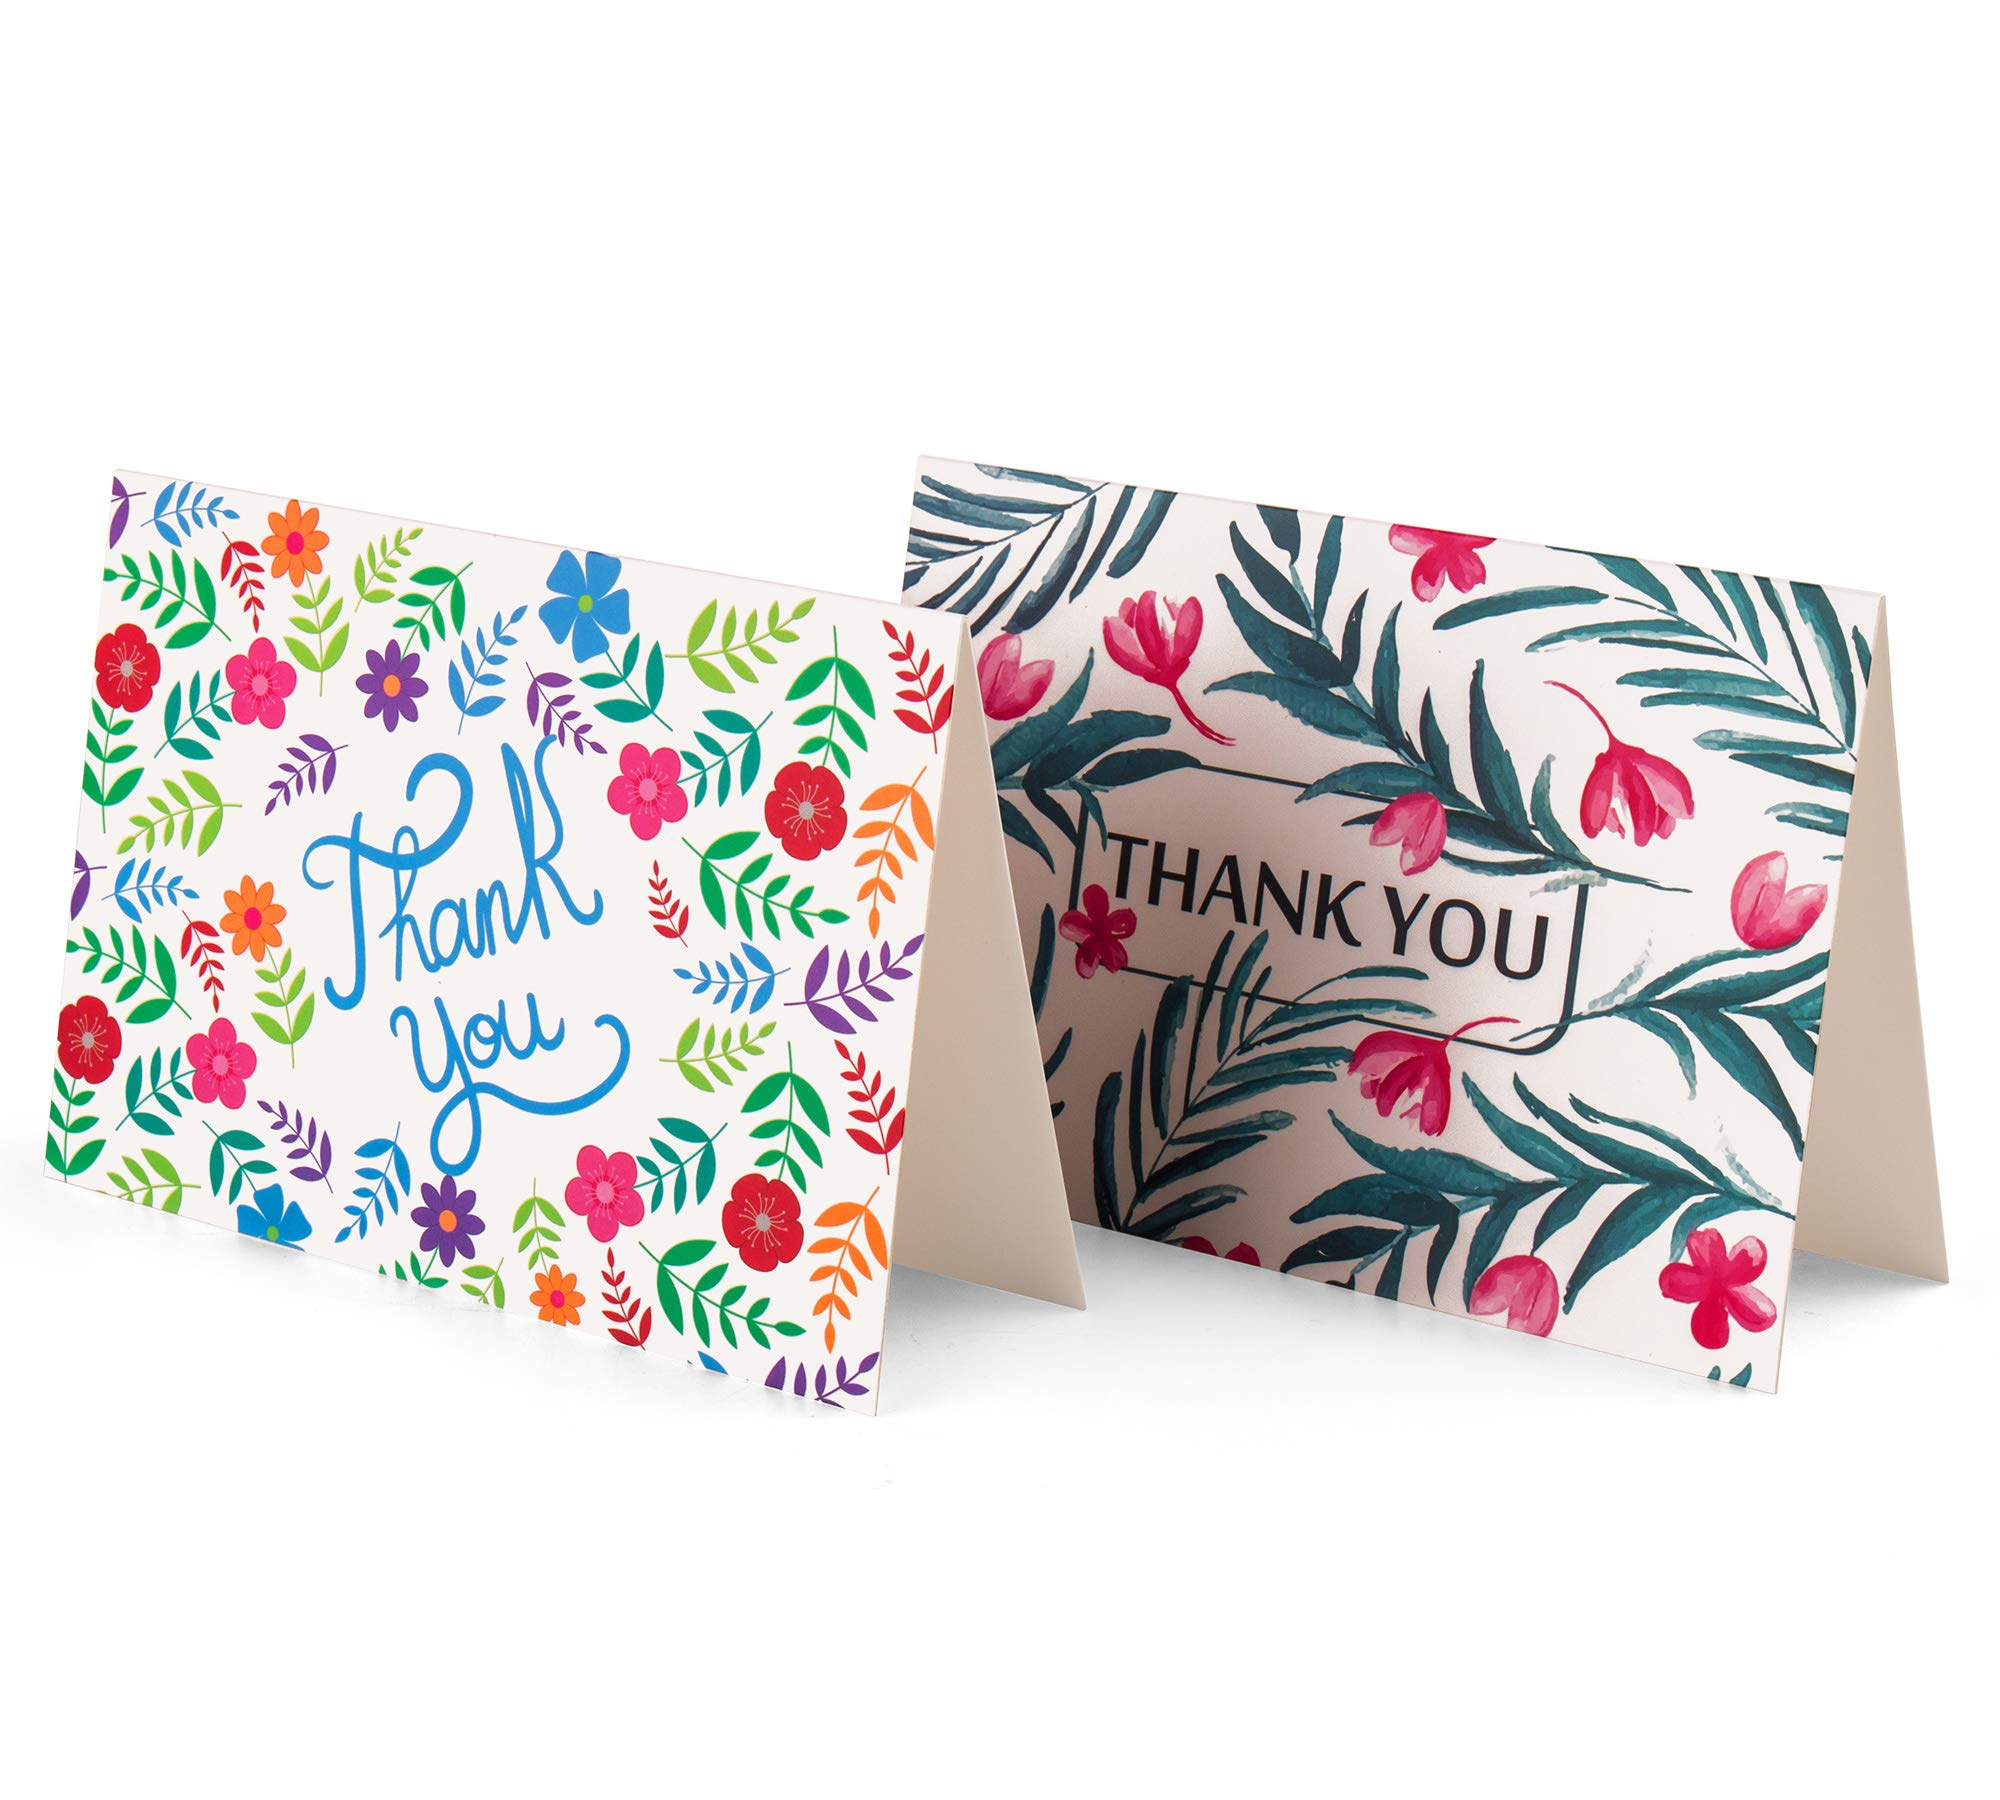 100 Pack Floral Thank You Cards Blank Greeting Notes for Wedding, Bridal Shower Baby, Shower Graduation, Anniversary, Birthday with Envelopes